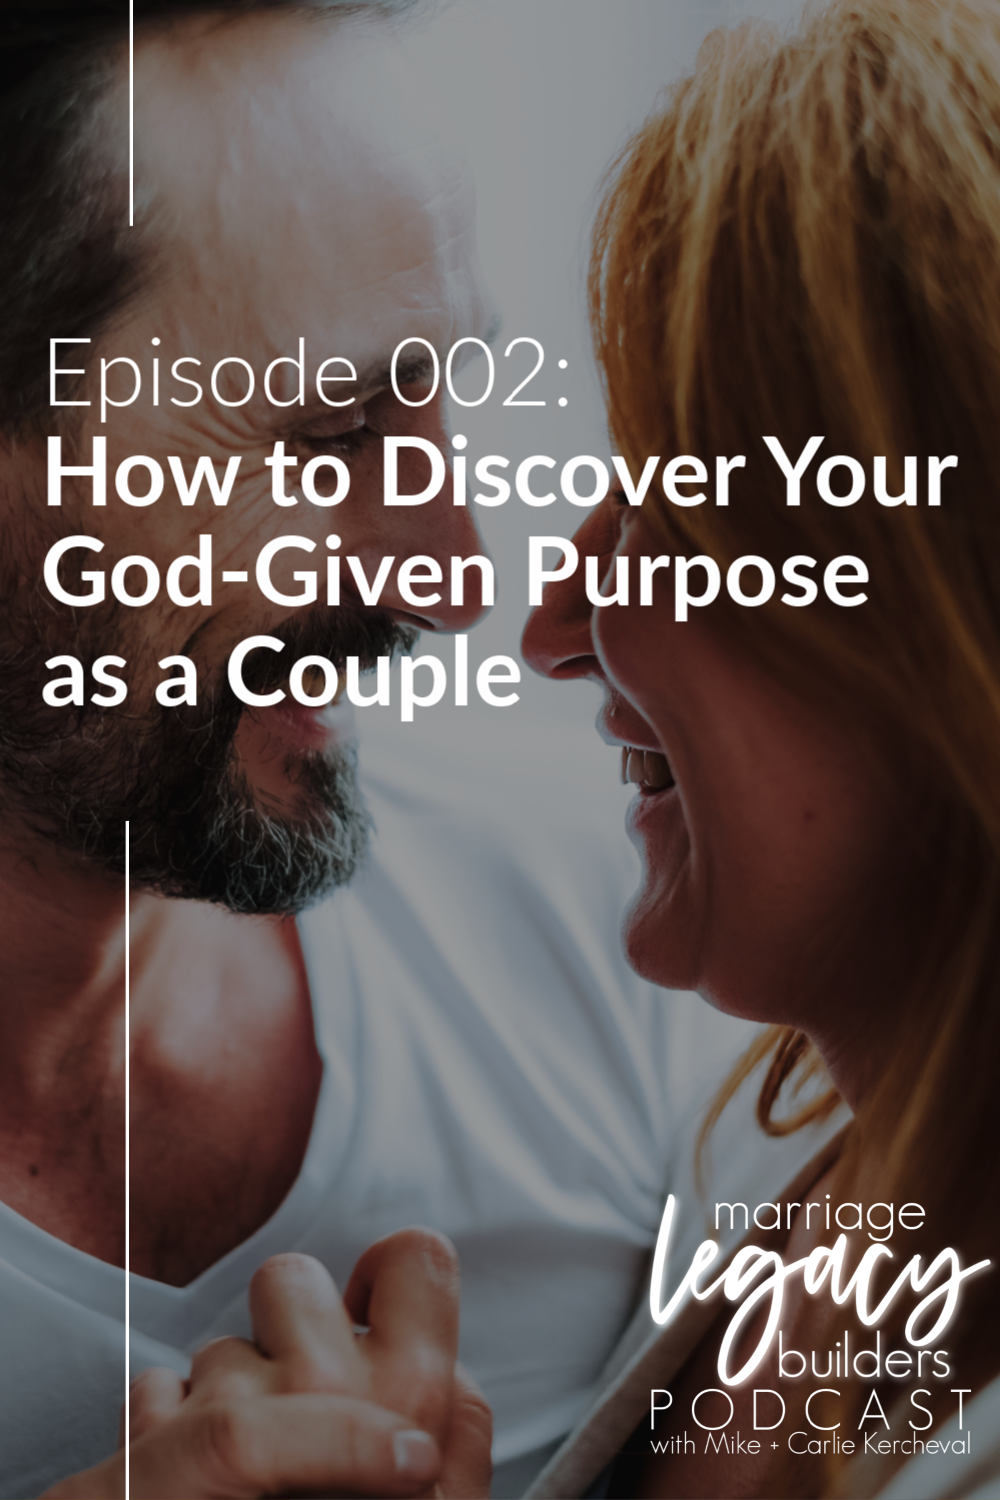 Episode 002: How to Discover Your God-Given Purpose as a Couple | MarriageLegacyBuilders.com